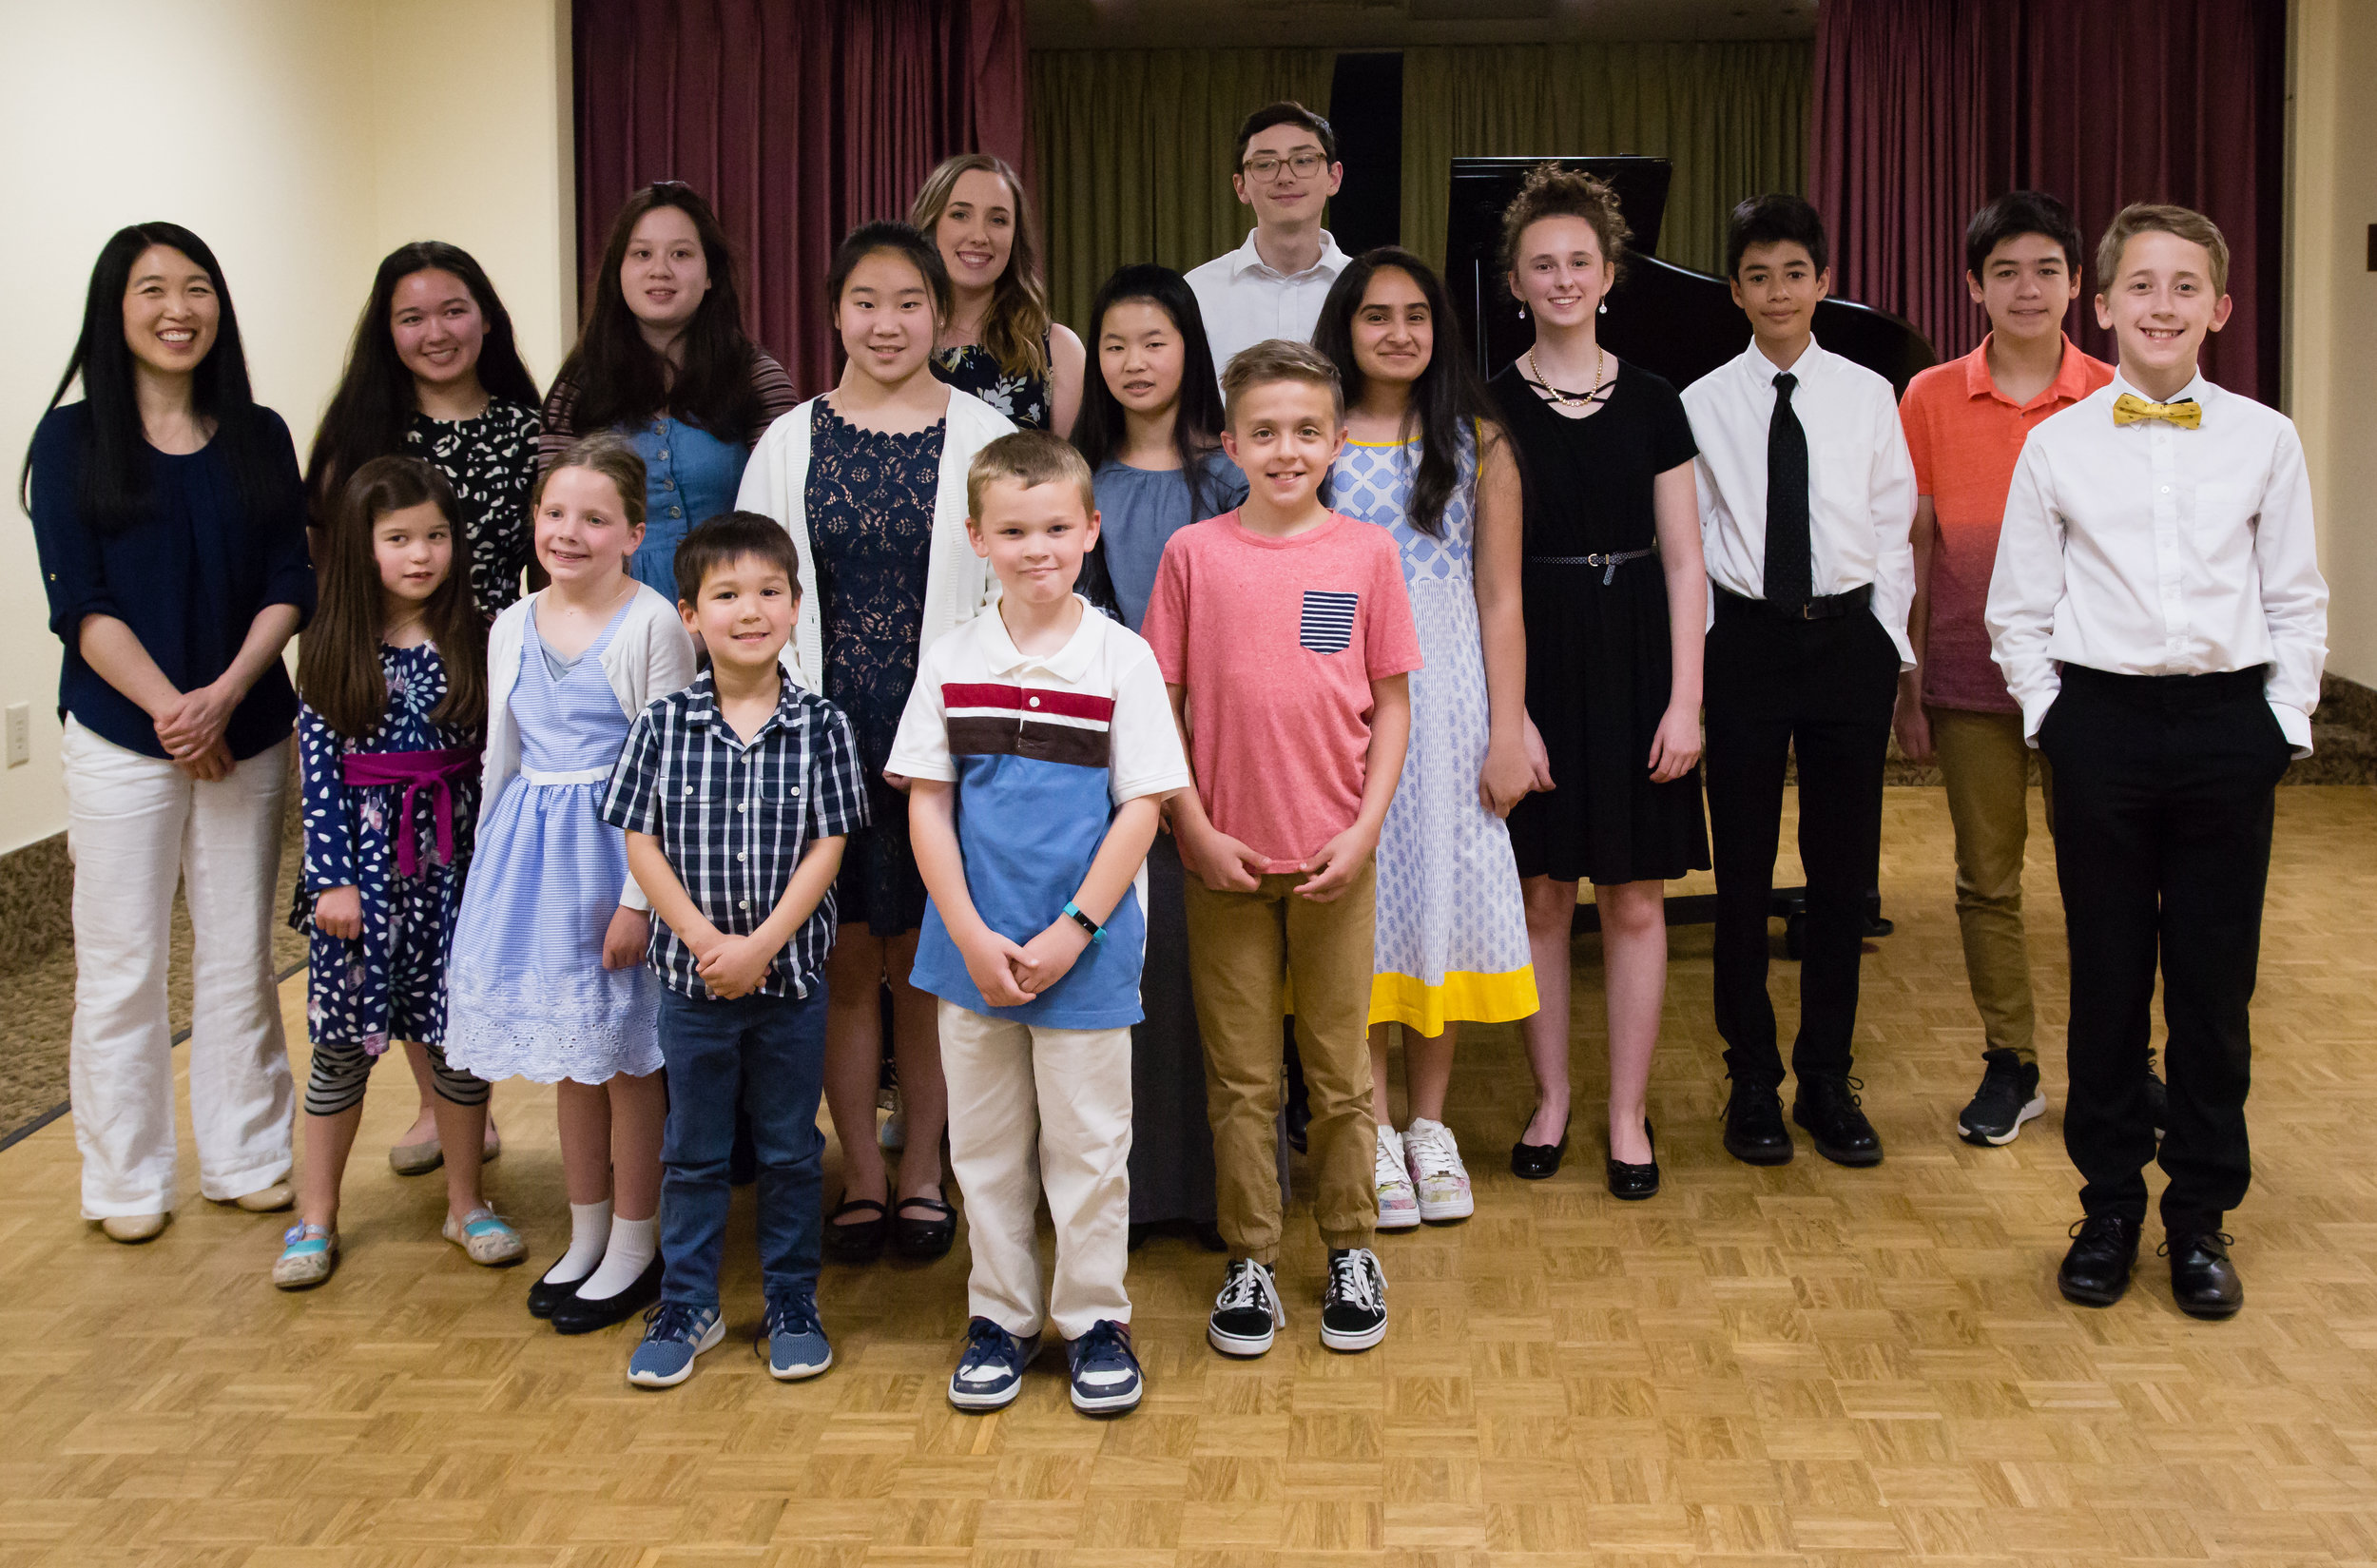 Recital 2019 photo - what an amazing group of students!